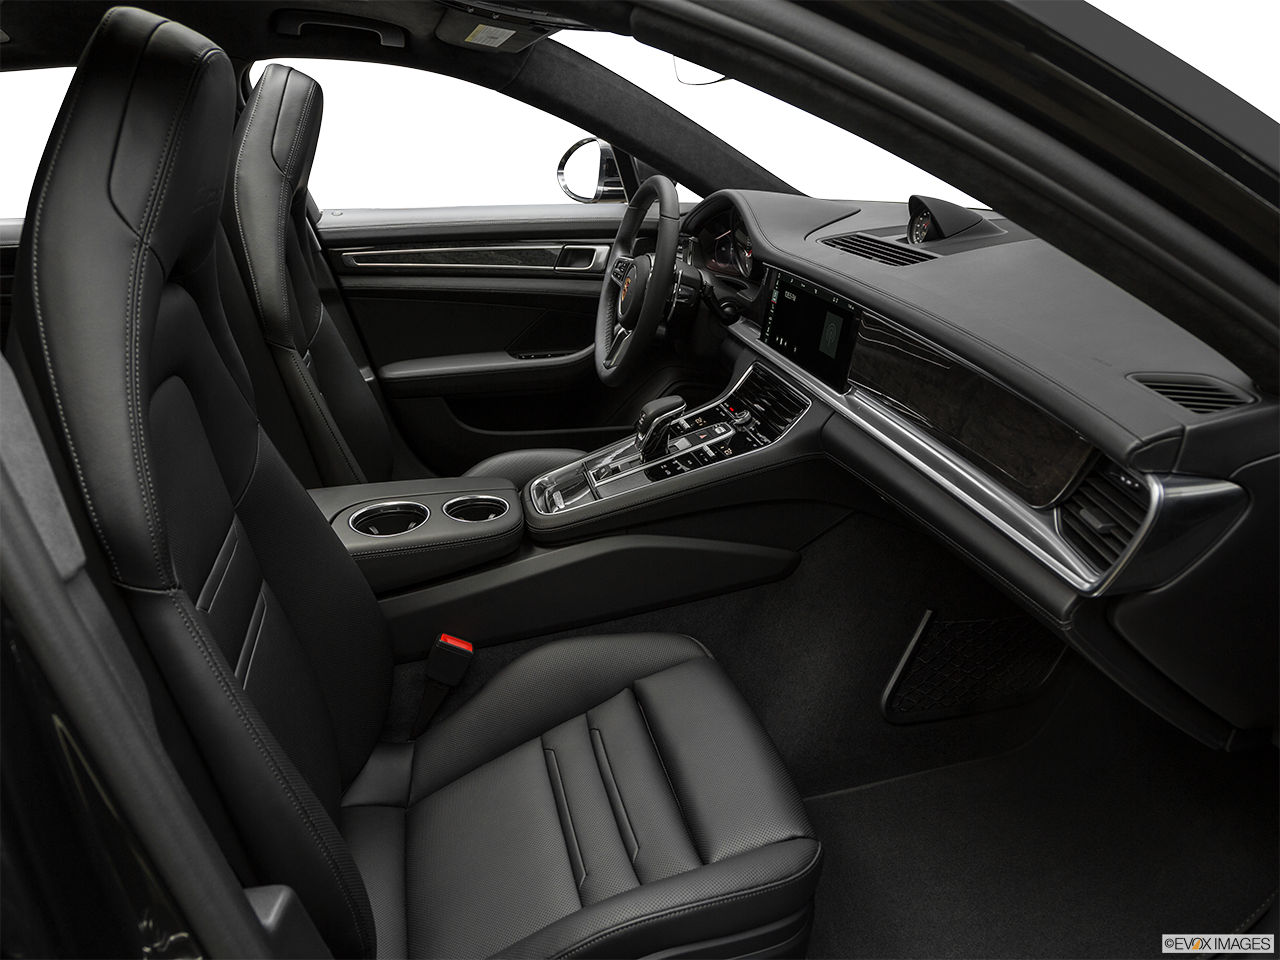 Interior view of the Porsche Panamera 4 E-Hybrid